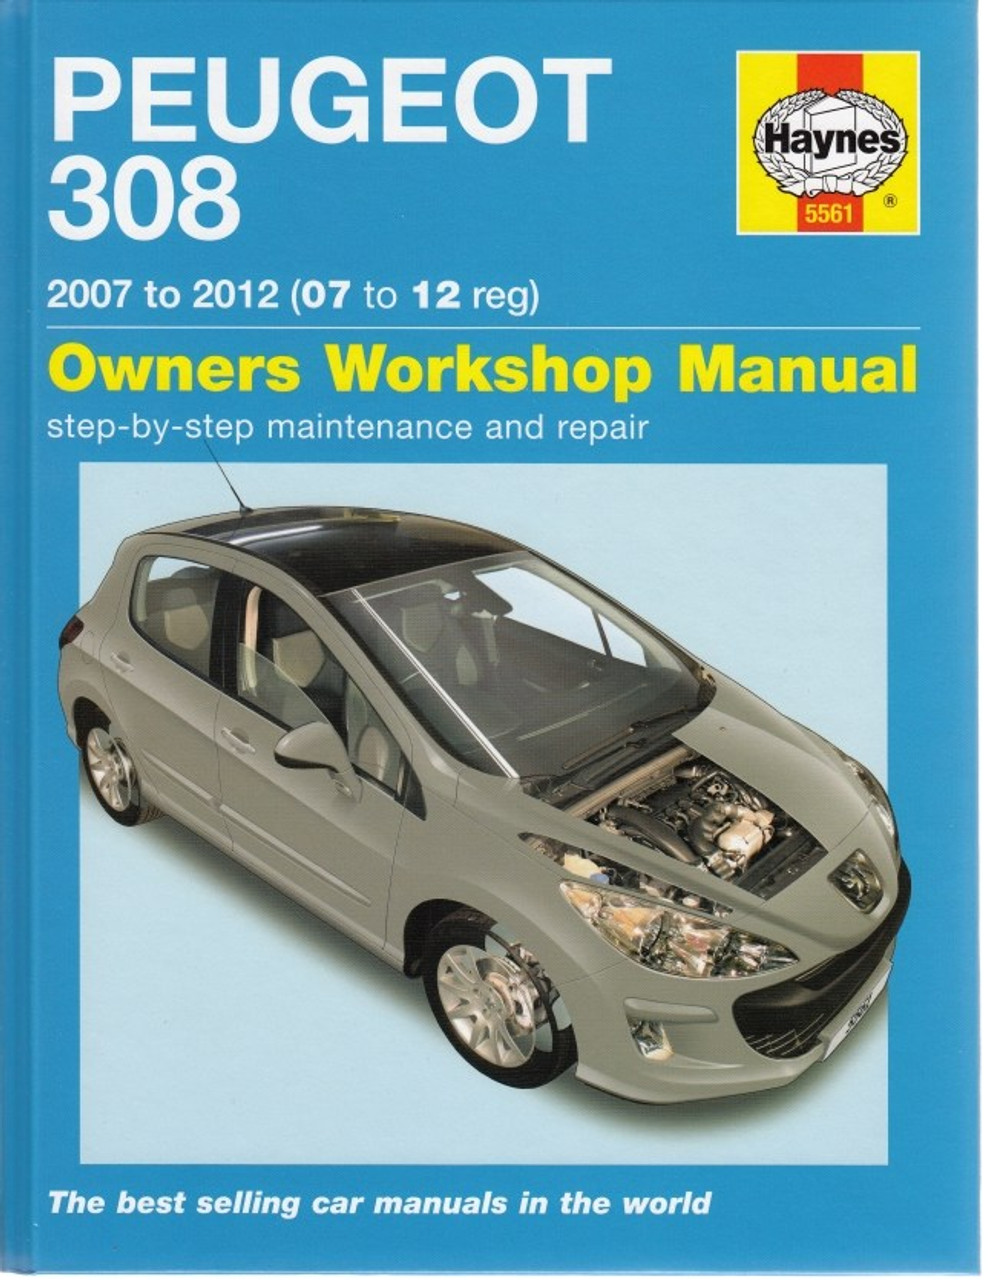 peugeot 308 2007 - 2012 petrol & diesel repair manual